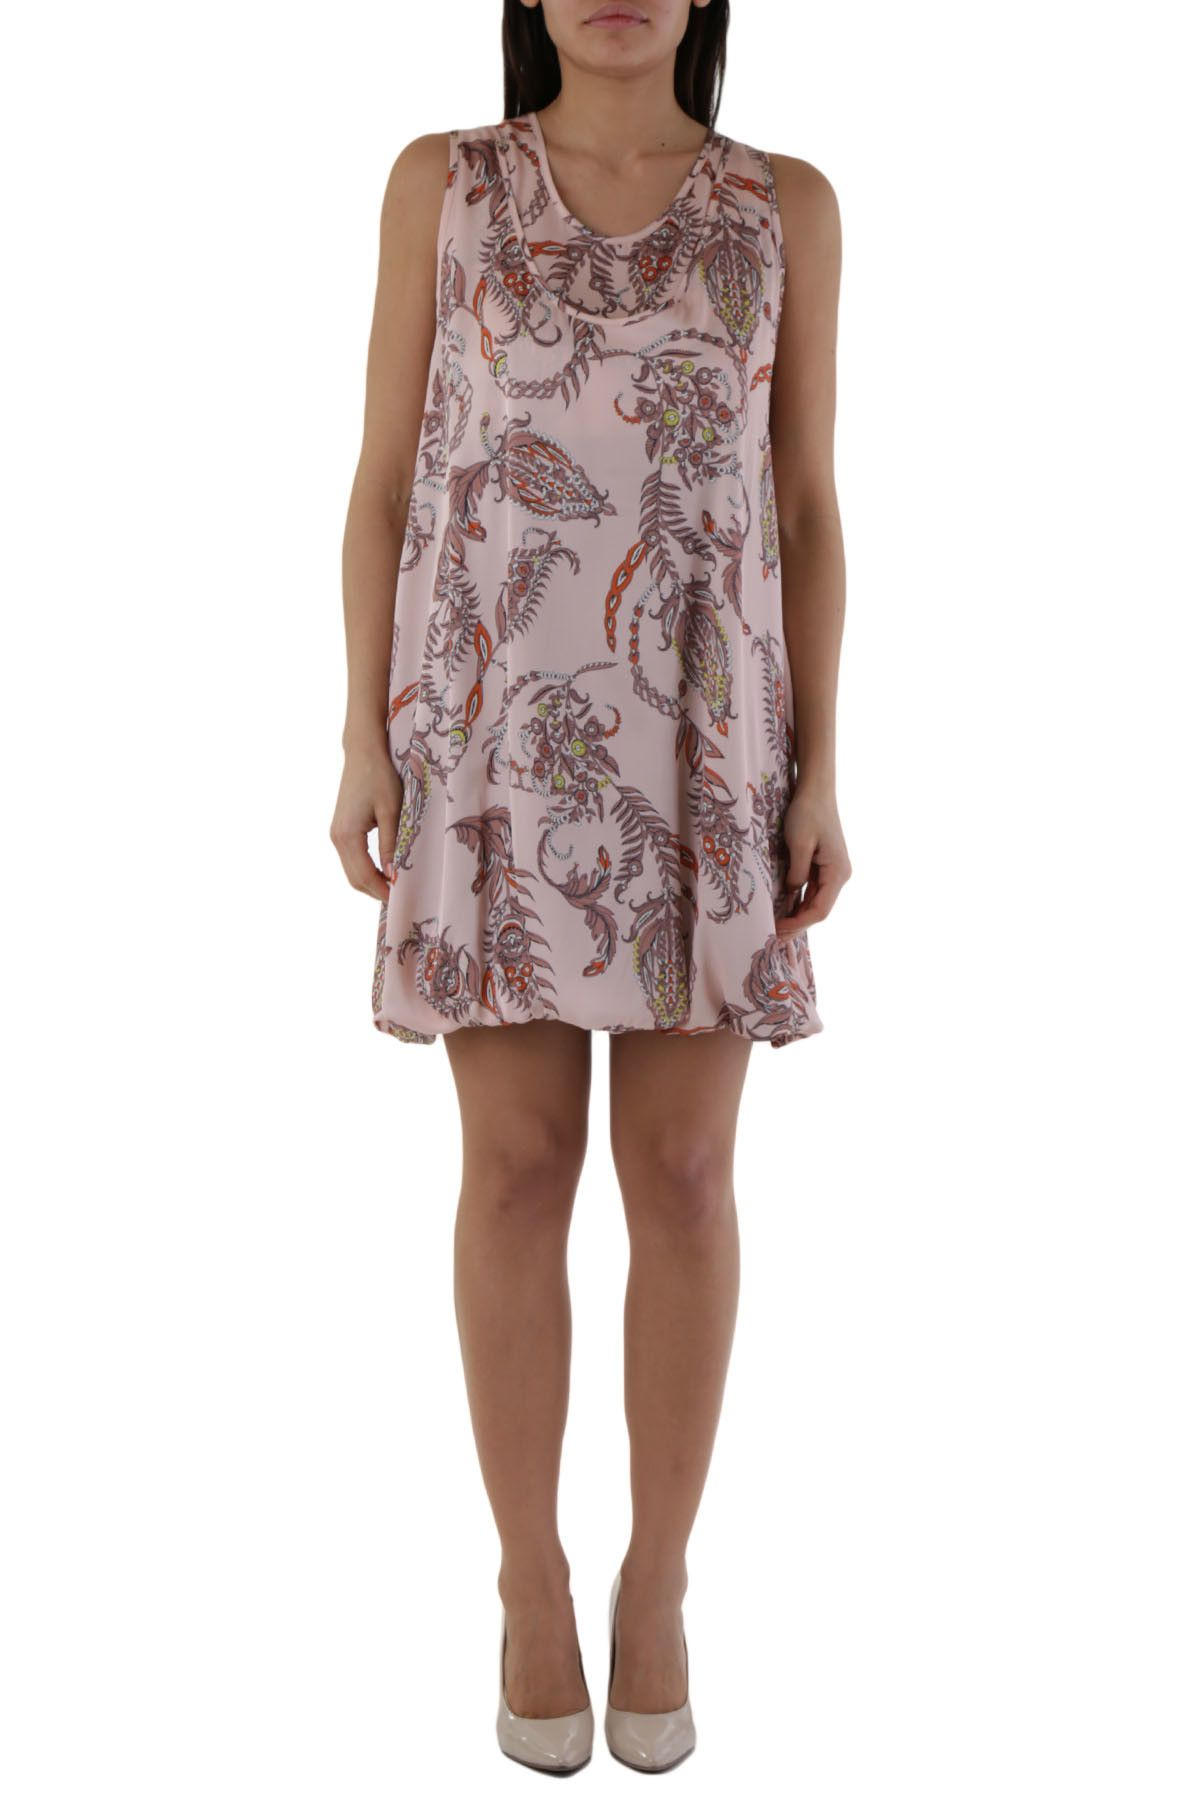 Olivia Hops Women's Dress In Pink